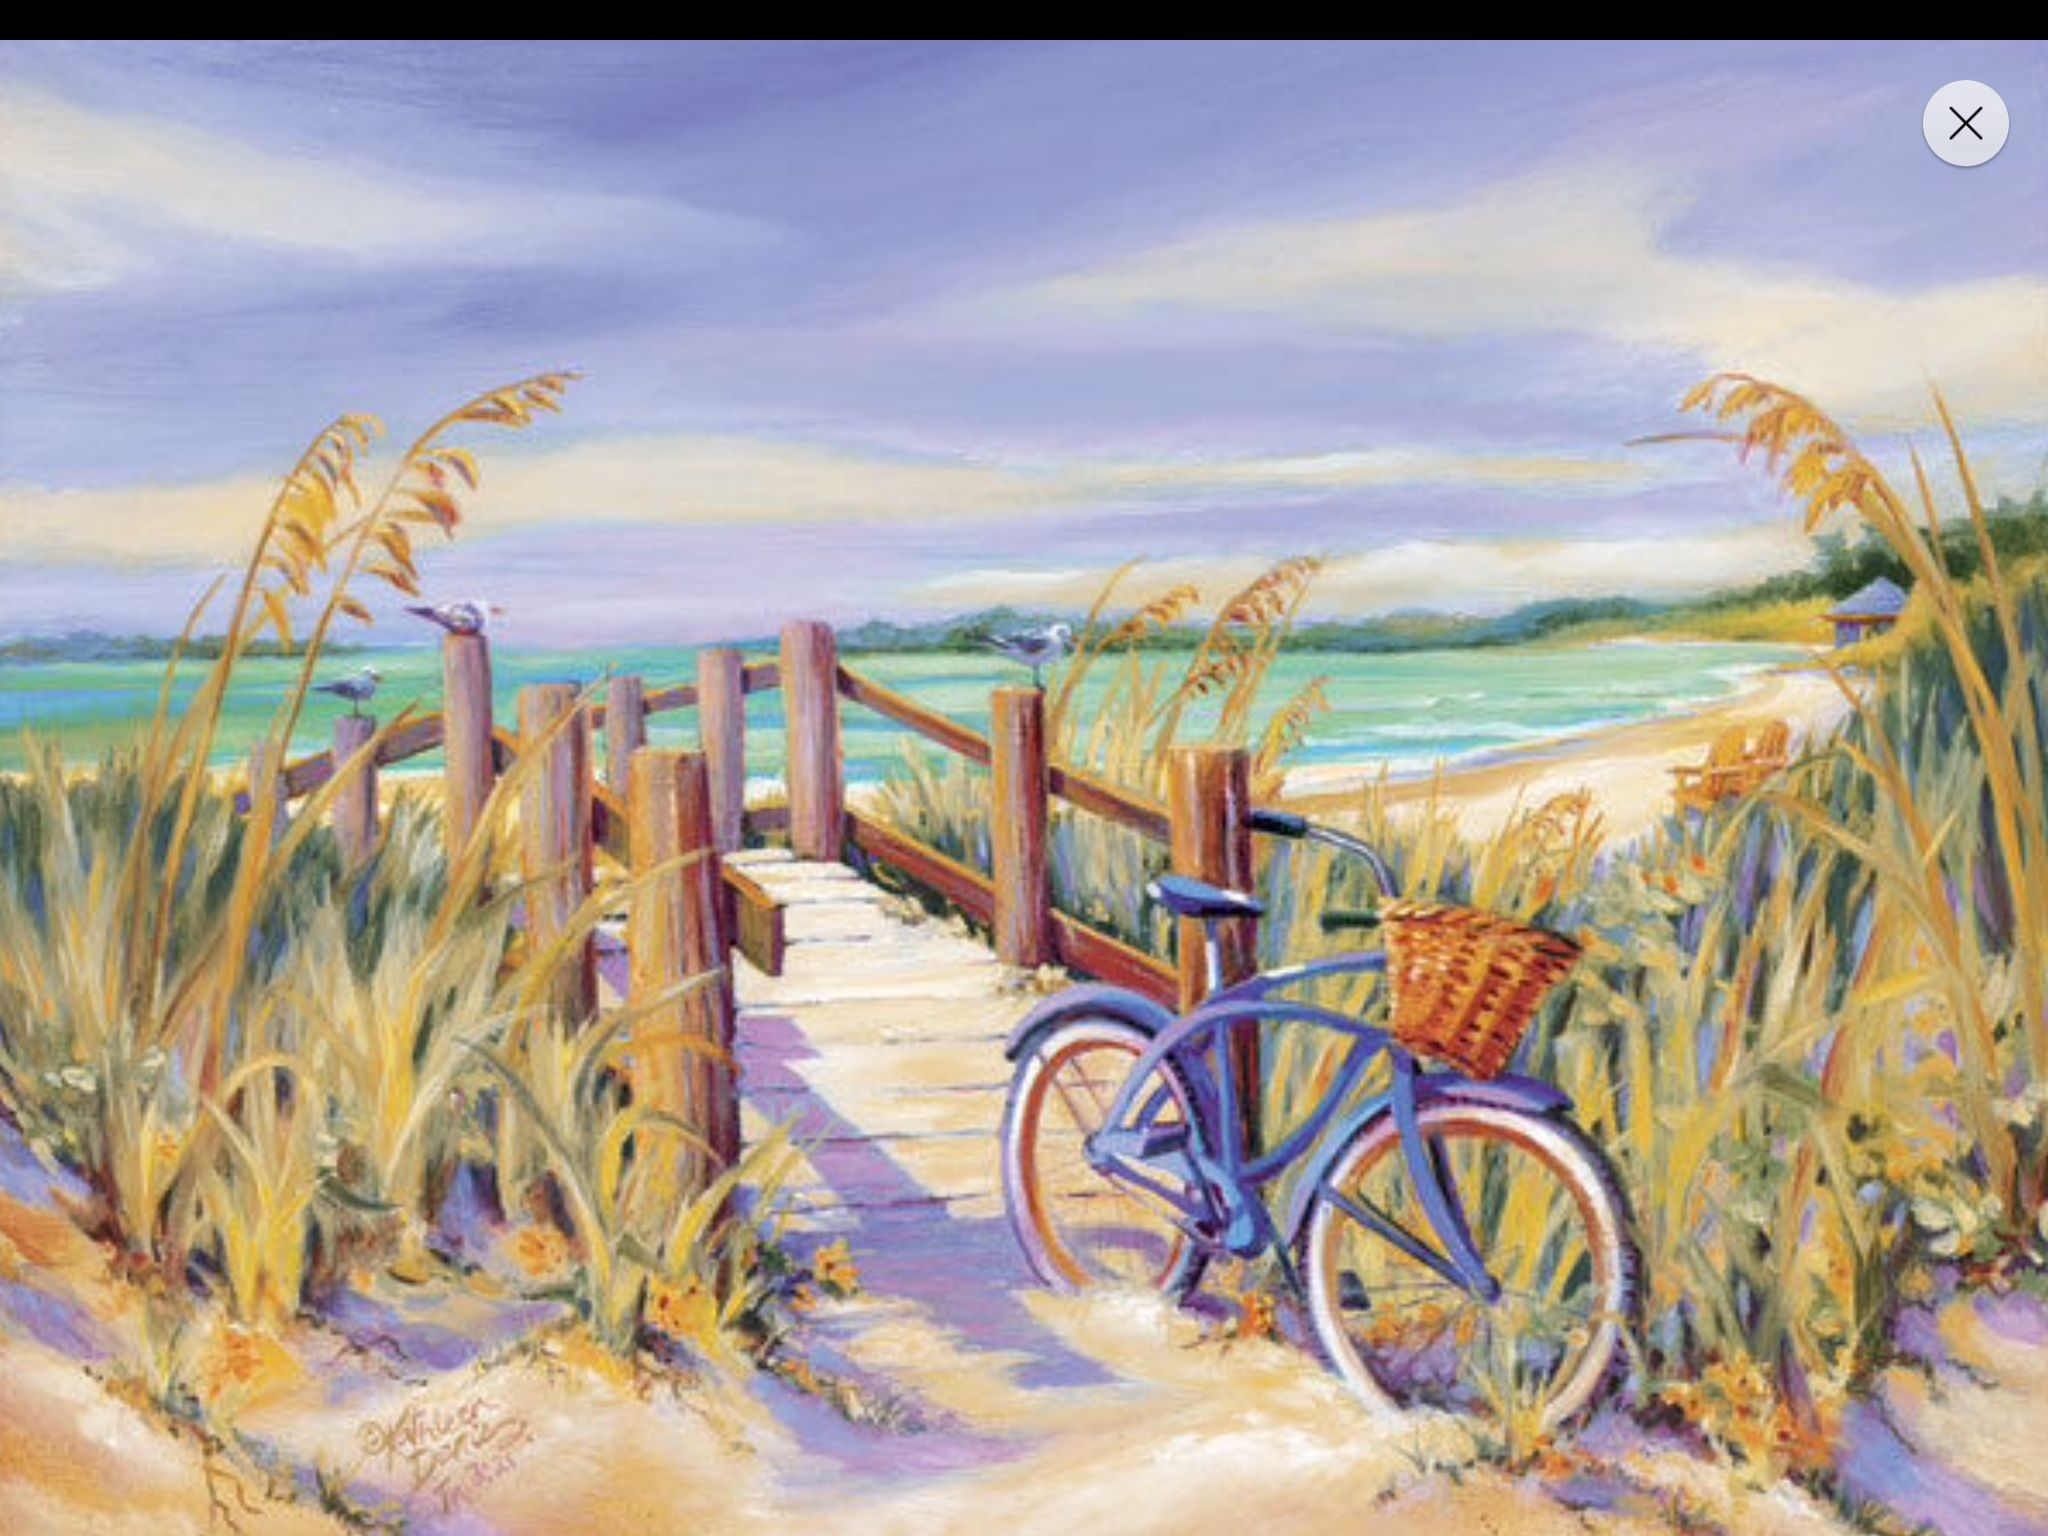 Beach chairs on the beach painting - Find This Pin And More On Art Photos More Arte Fotos Mas Peaceful Beach